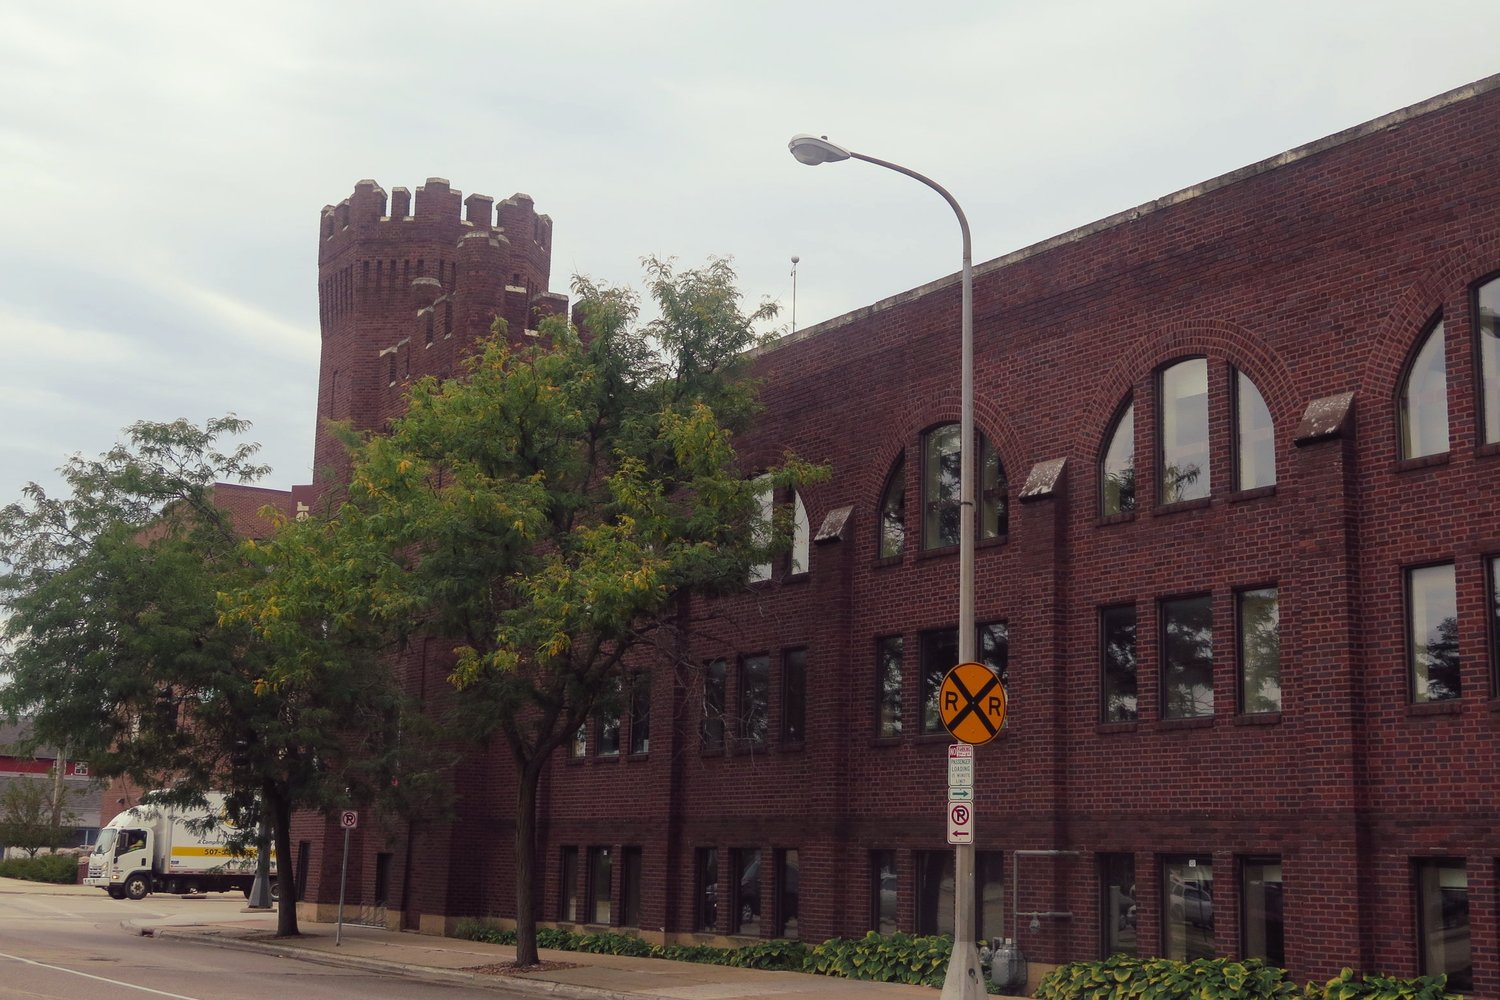 Exterior of the Armory building at 115 1/2 N. Broadway / Med City Beat